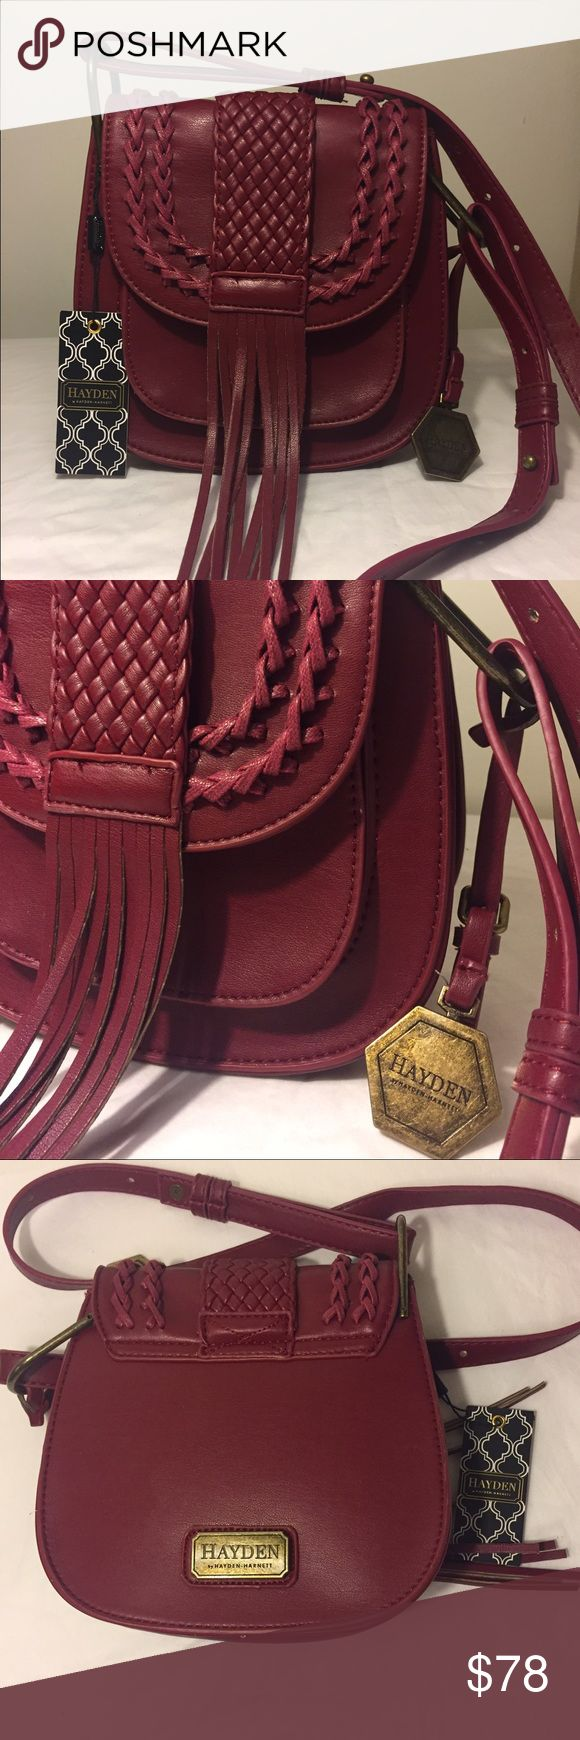 NWT‼️Hayden by Hayden Harnett Leather Bag. NWT‼️Hayden by Hayden Harnett Bohemian Chic Saddle Bag. Wine color comes with dust bag. Adjustable straps for cross body or shoulder. Interior pockets one zipped and one for phone . Exterior under flap pocket. Bags Crossbody Bags